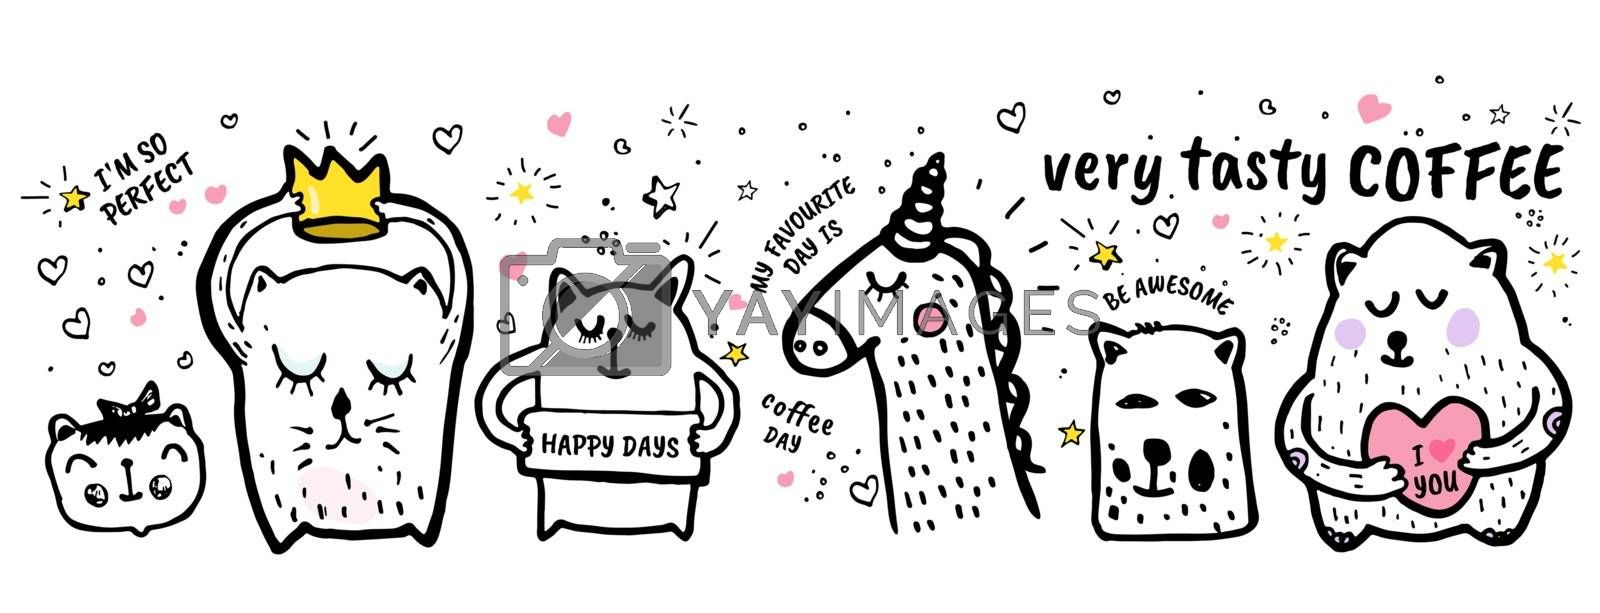 Very tasty coffee Vector freehand illustration background. Cover, banner with quote hand drawn doodles hearts stars, animals cat, bear, unicorn